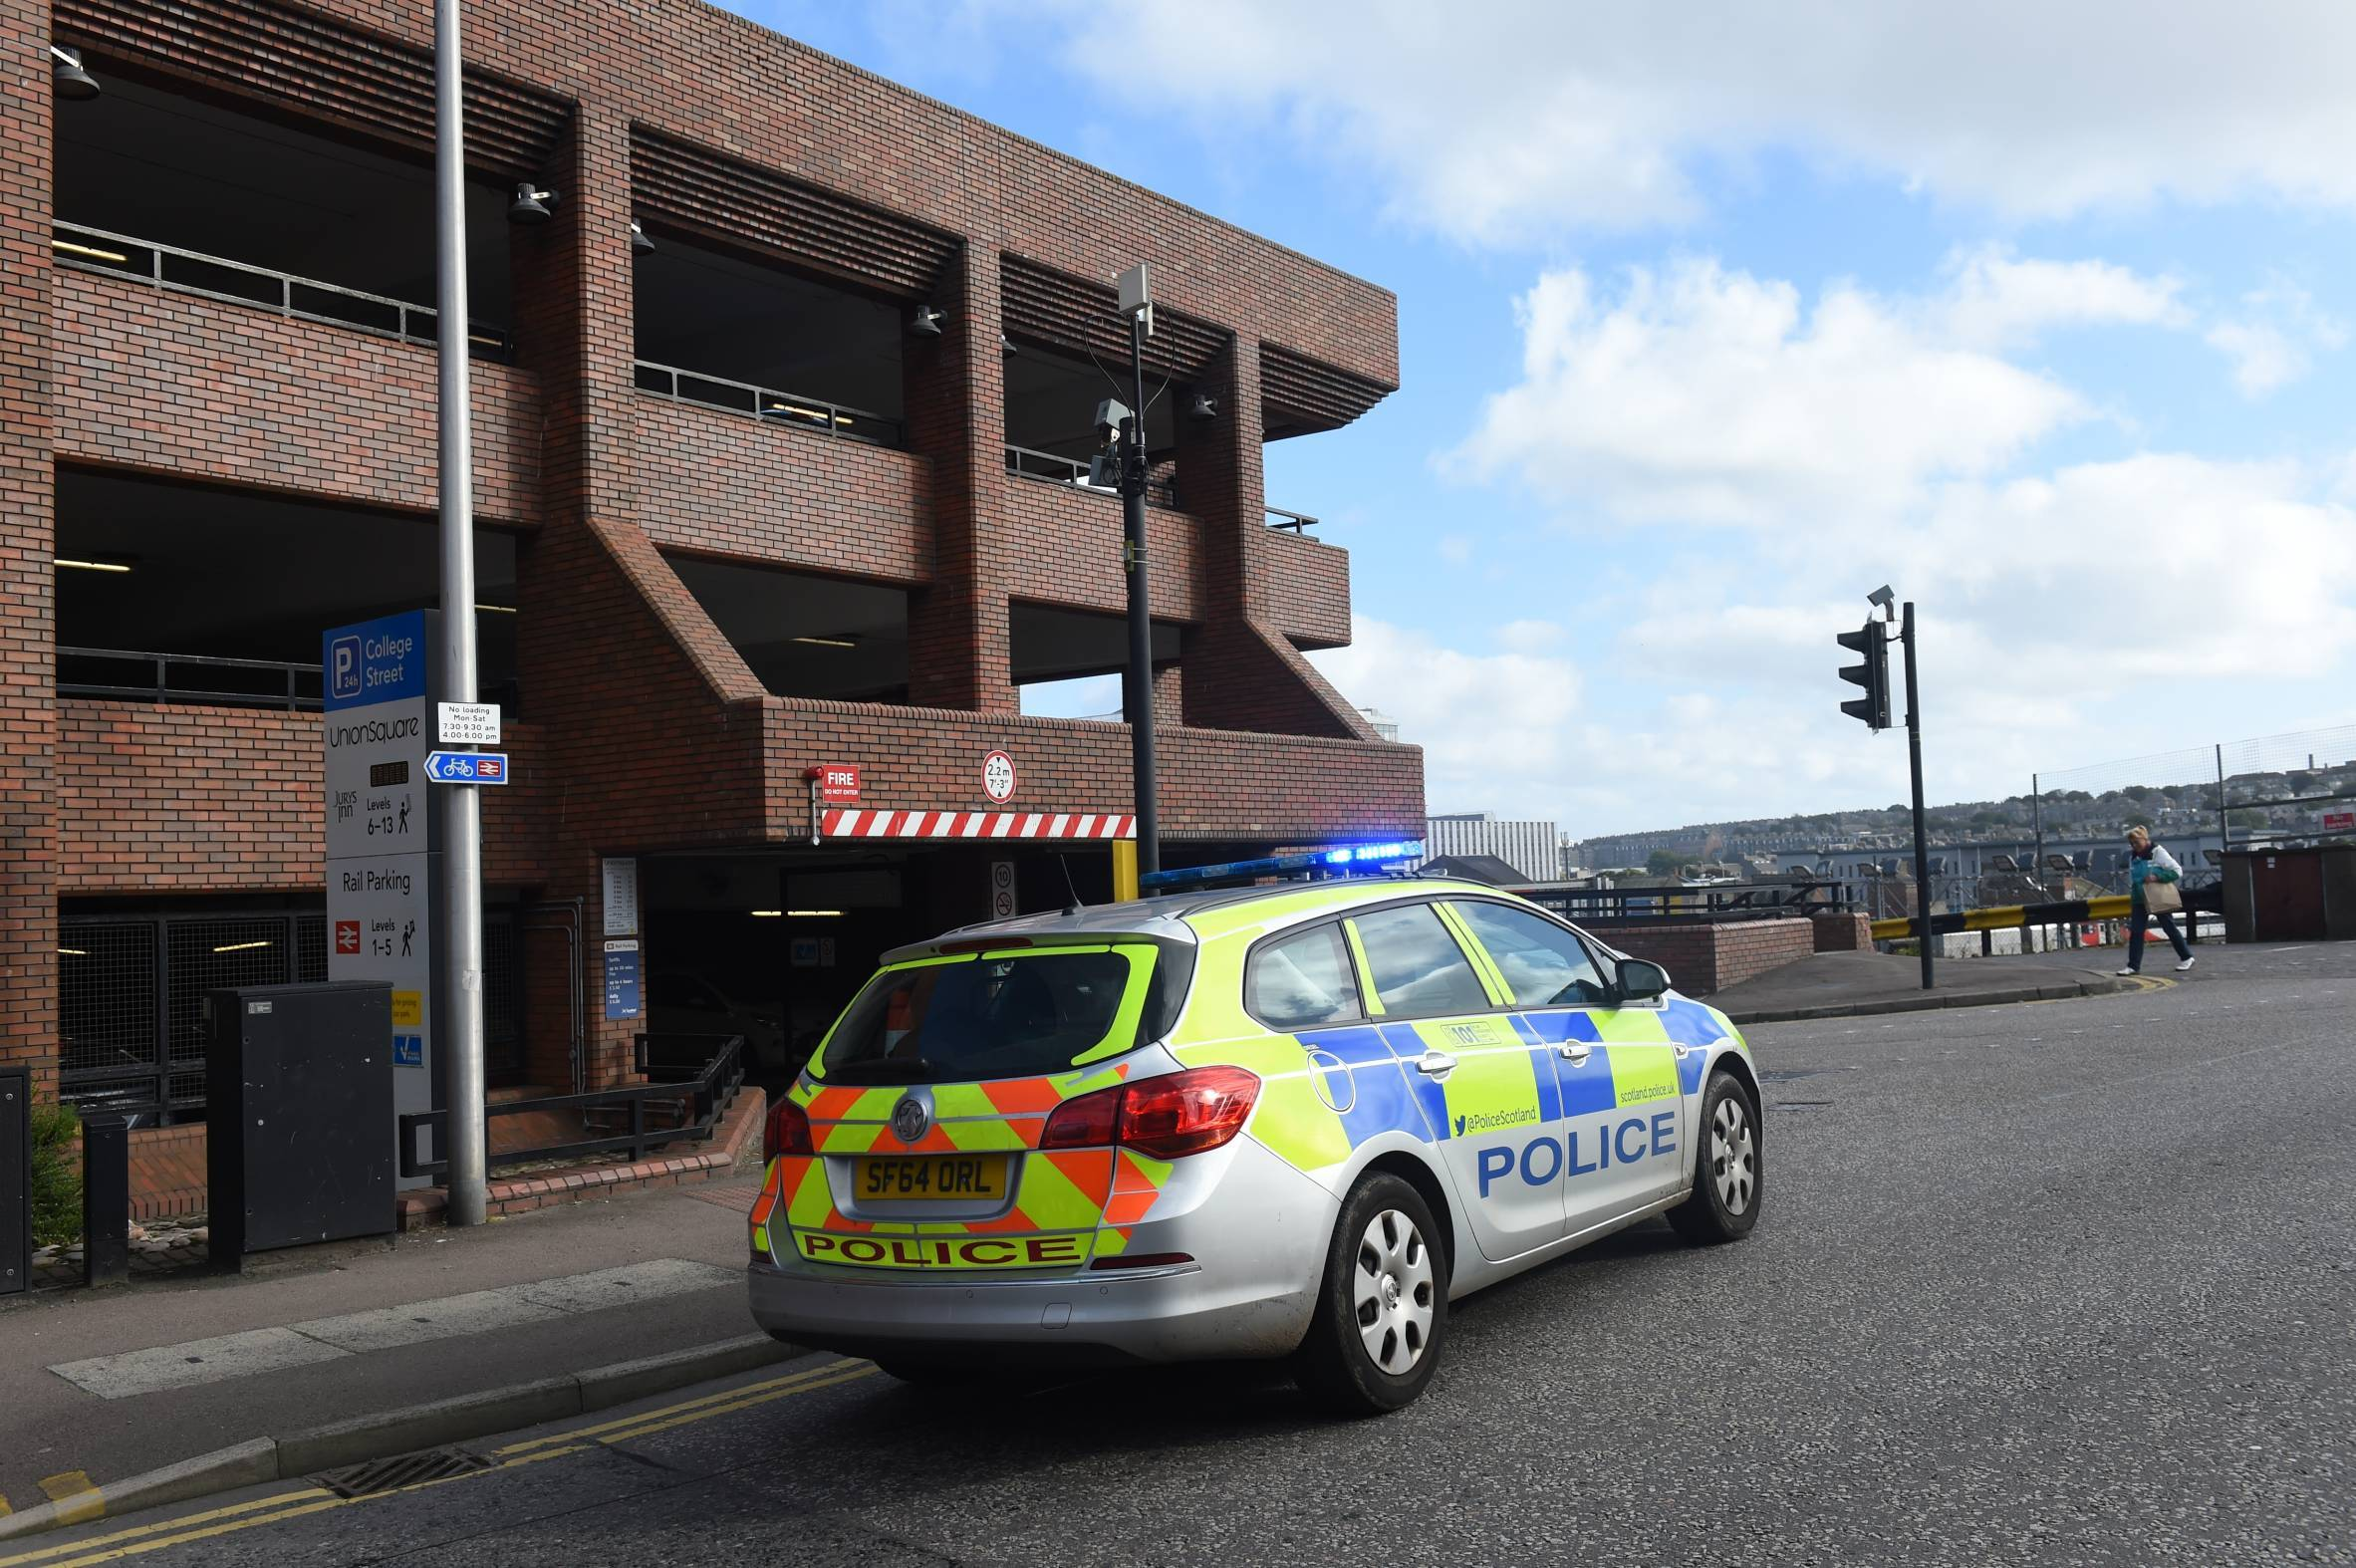 Police were called to South College Street.